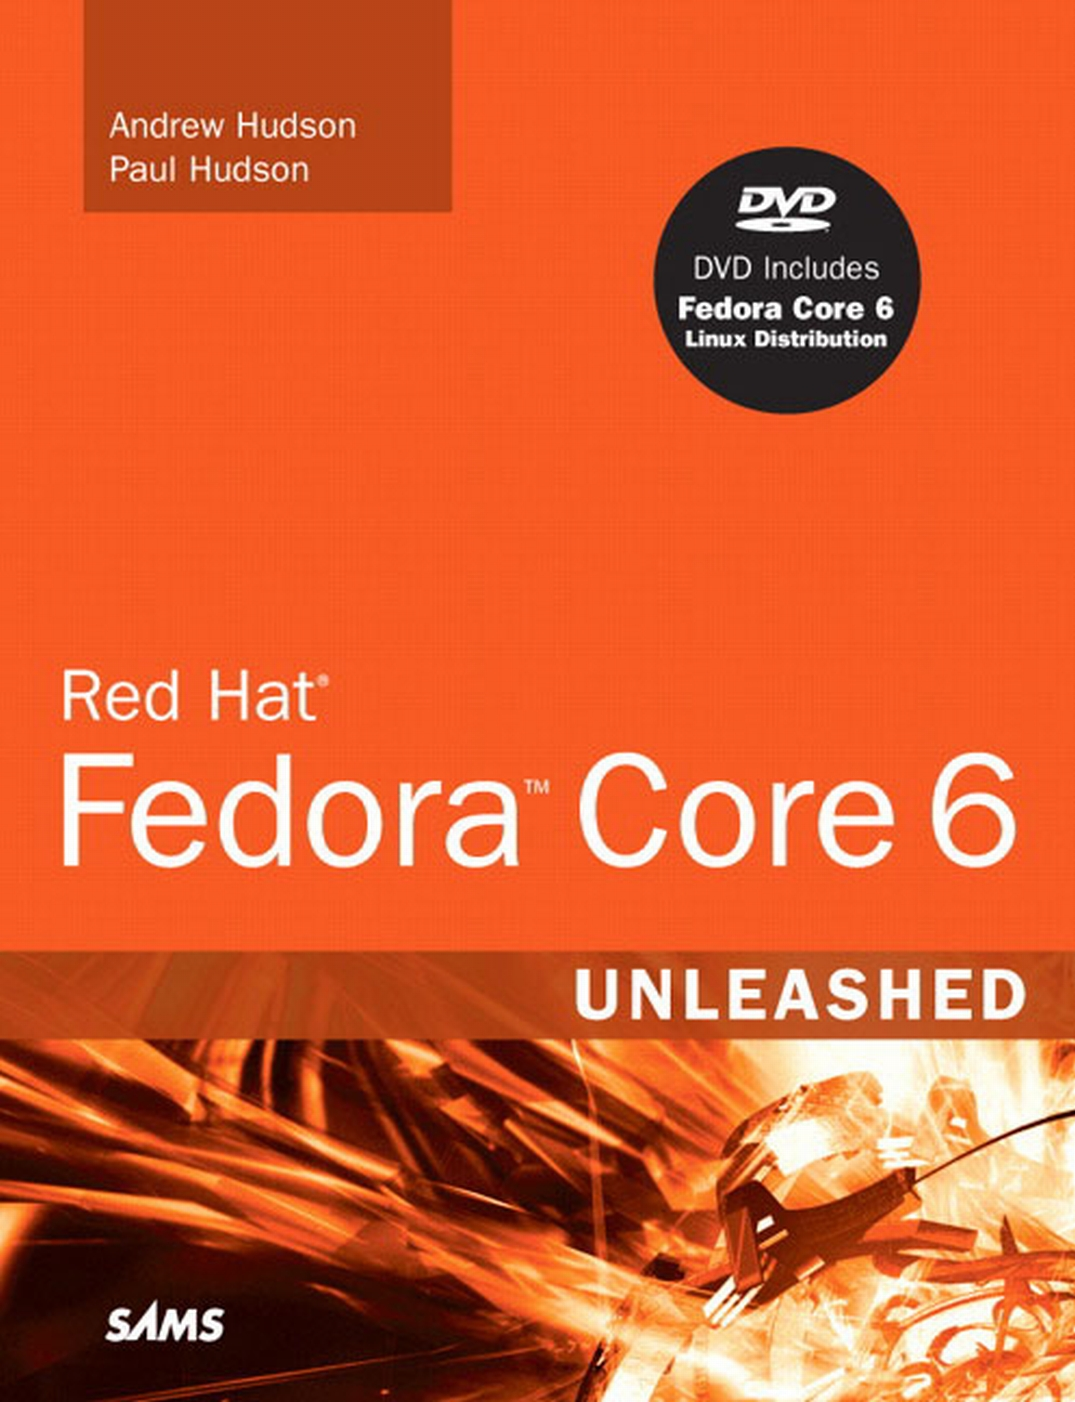 Book review: Red Hat Fedora Core 6 Unleashed by Andrew